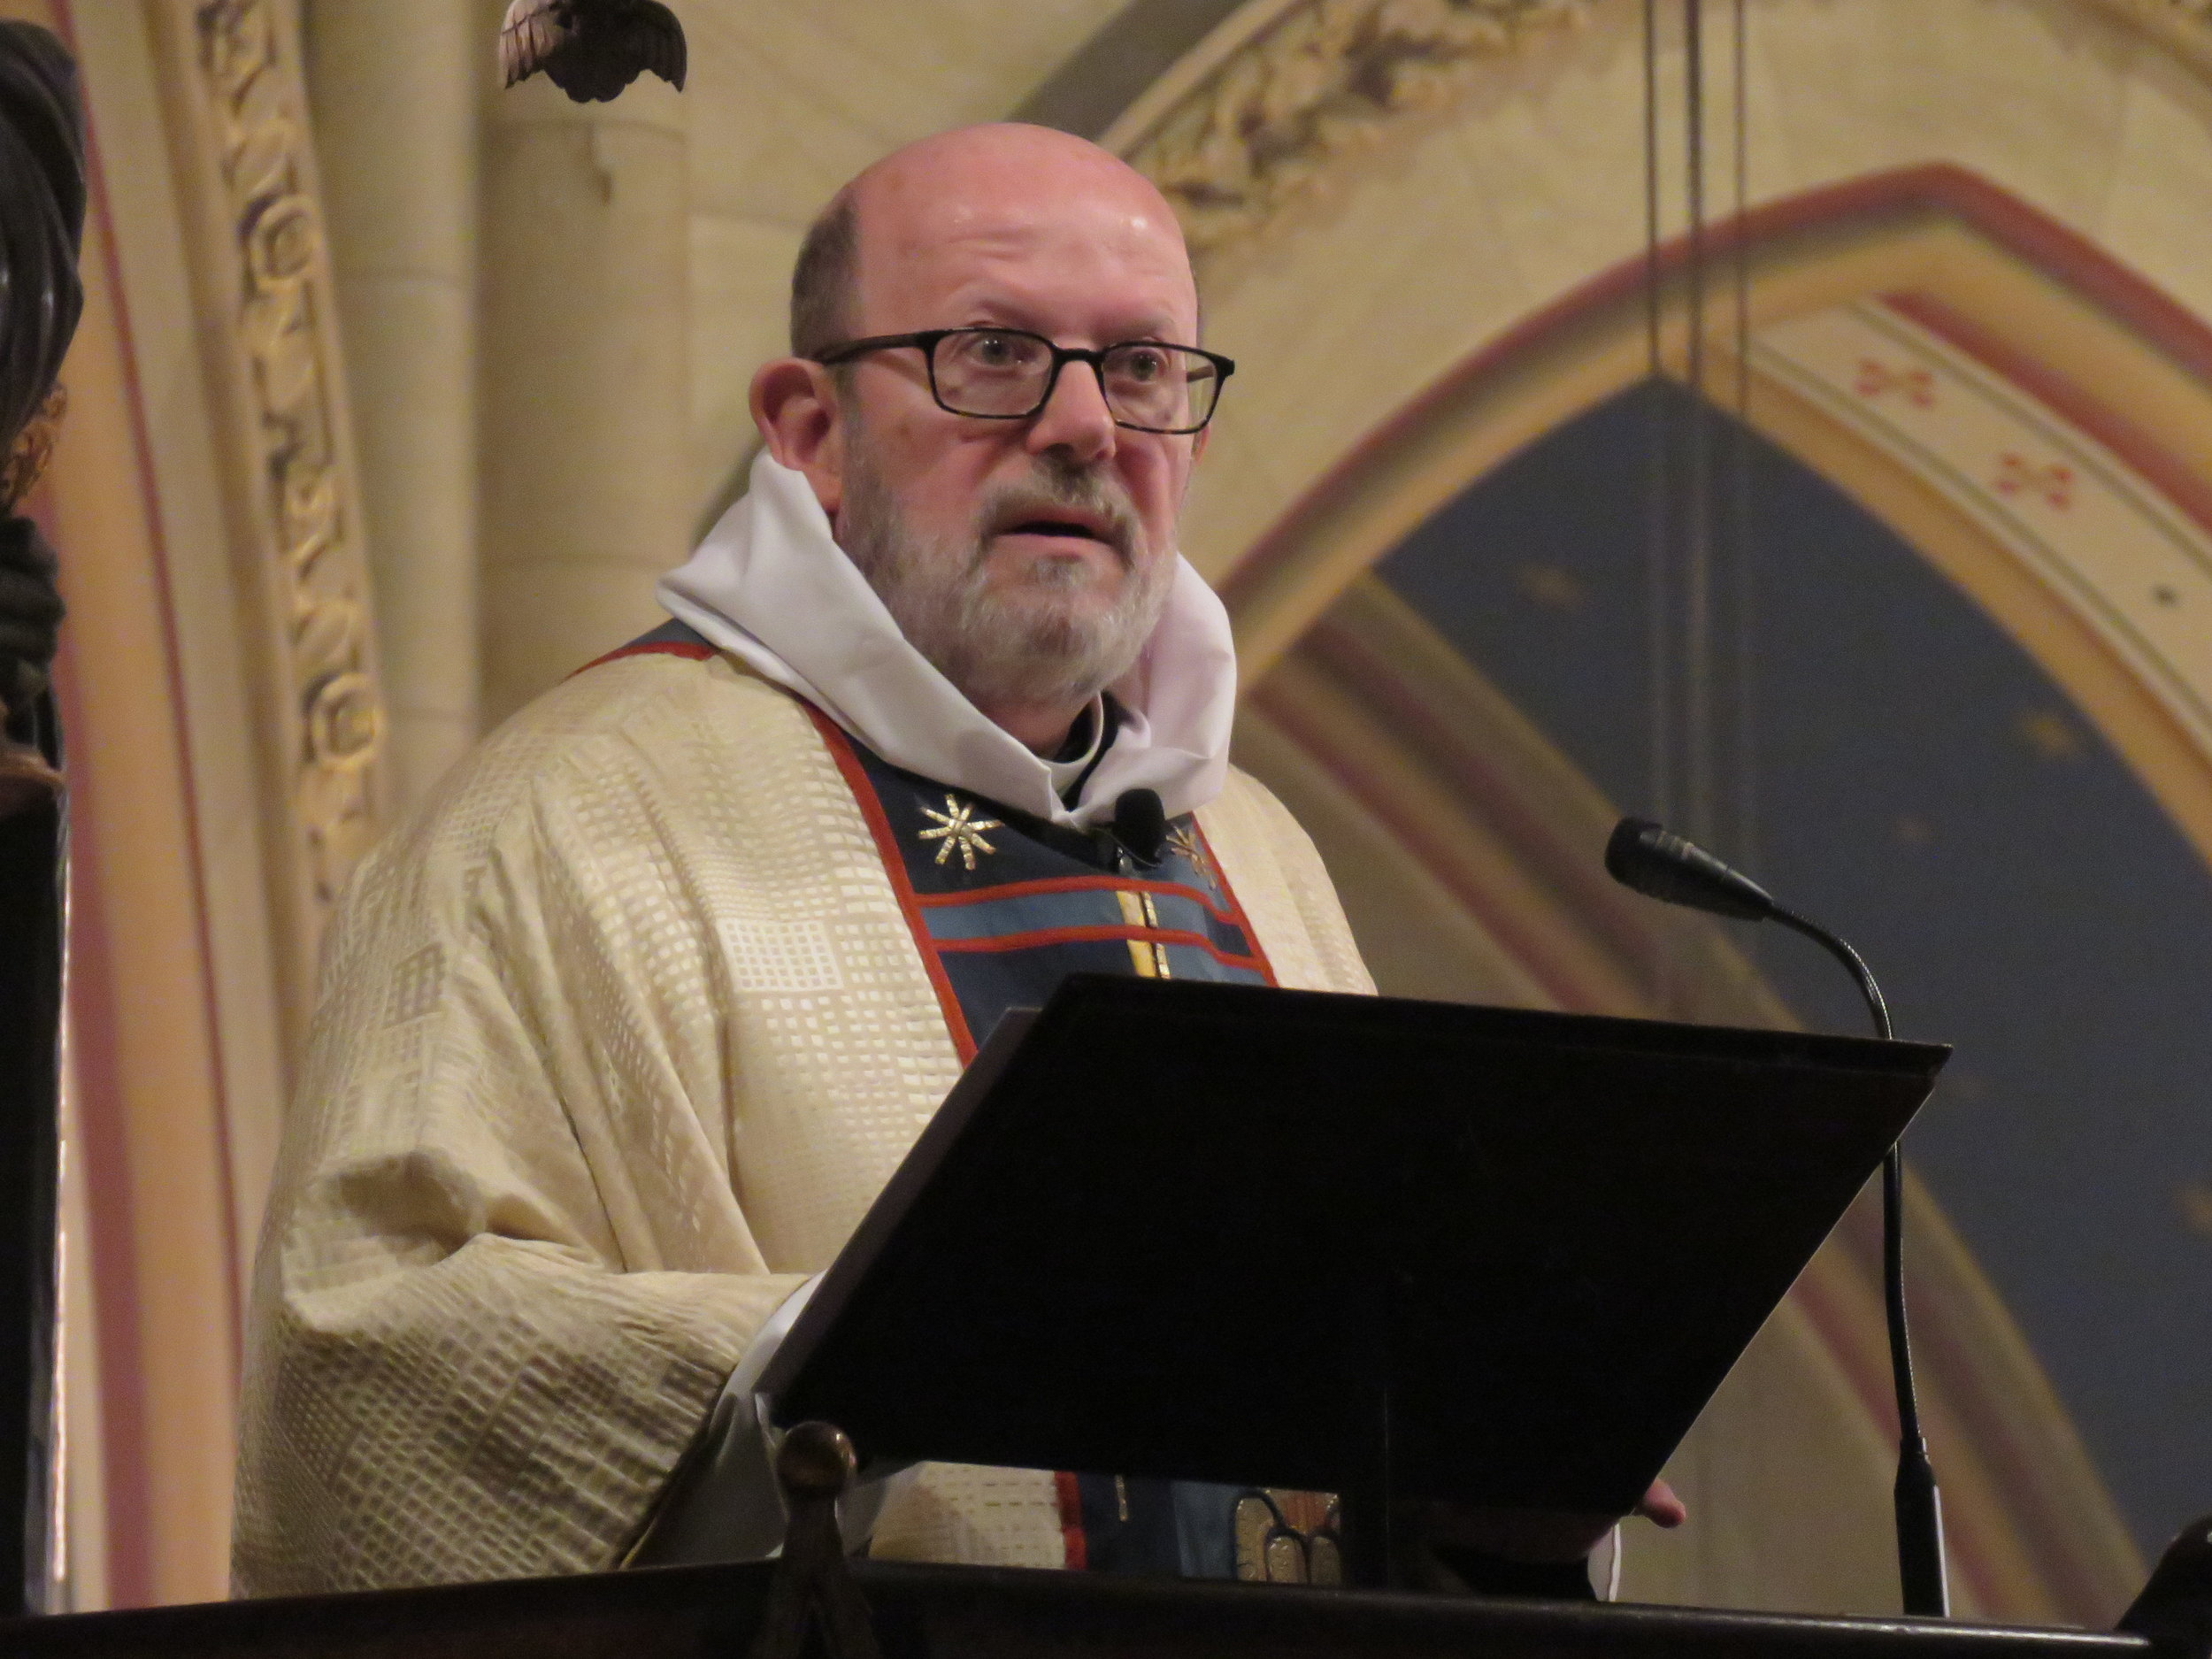 Father Jay Smith was celebrant and preacher for the Solemn Mass for the Annunciation.  Photo by Damien Joseph SSF